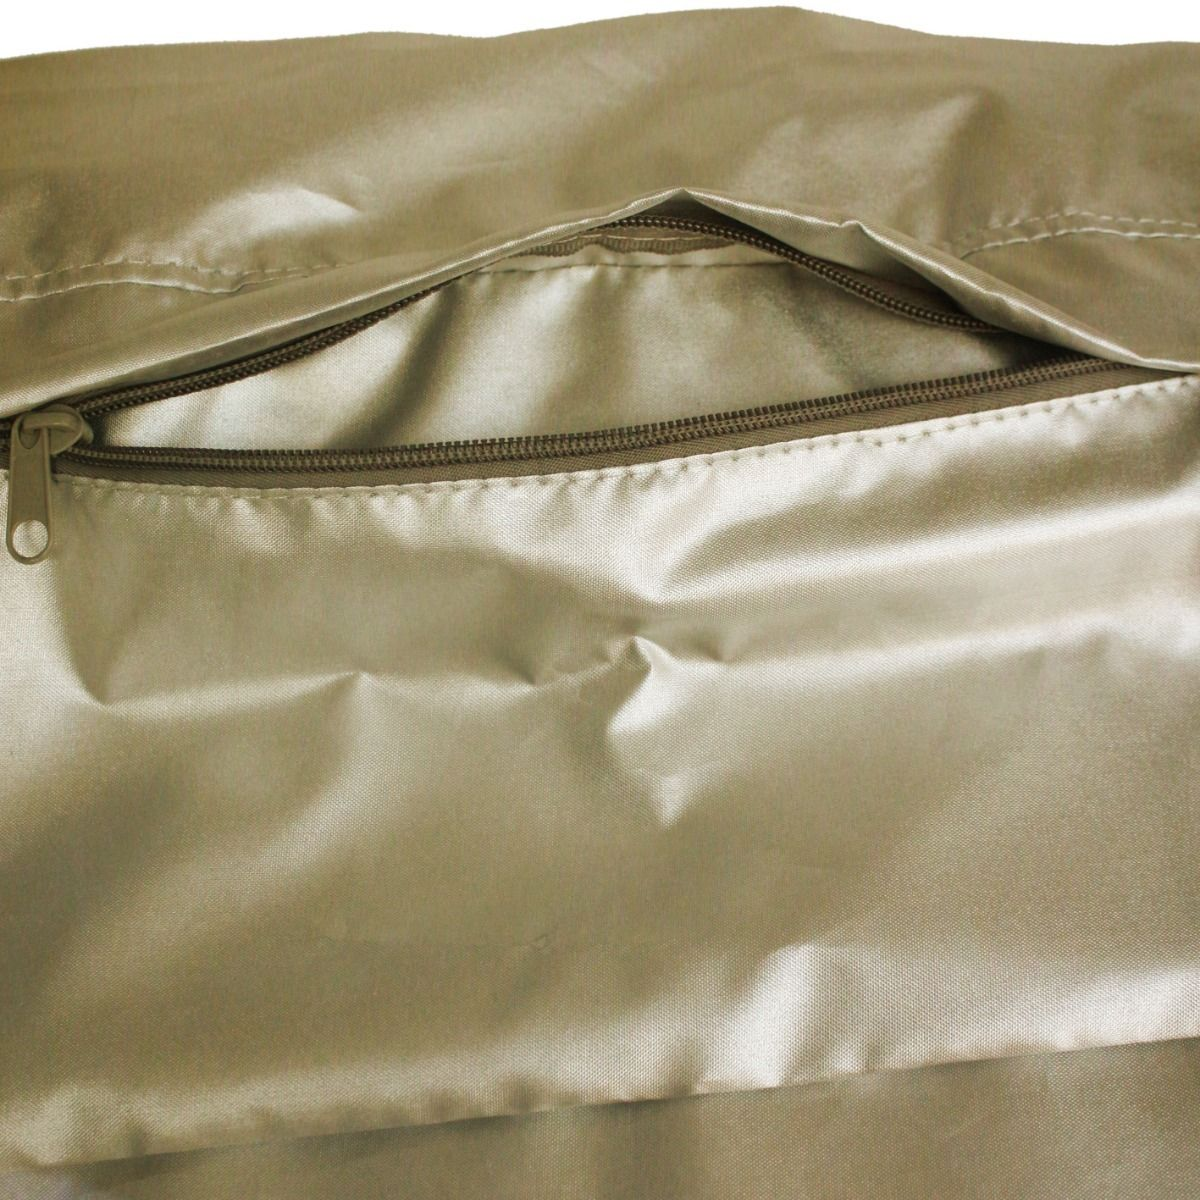 Waterproof-Outdoor-Heavy-Duty-Panier-Housse-Pour-Barbecue-Patio-Gaz-Grill-Cover-4-Tailles miniature 12